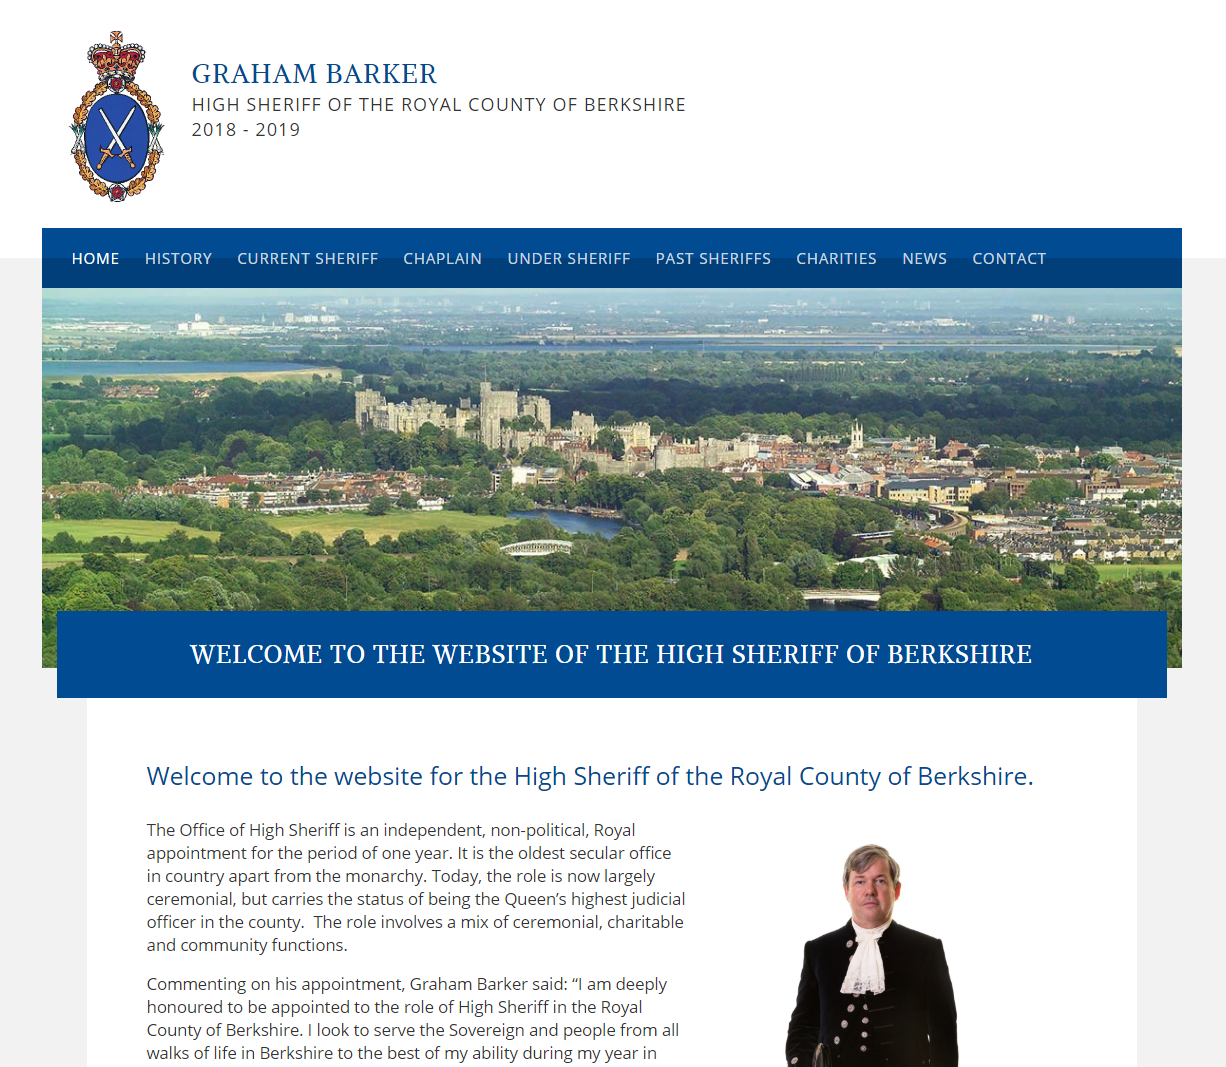 Website design for the High Sheriff of Berkshire